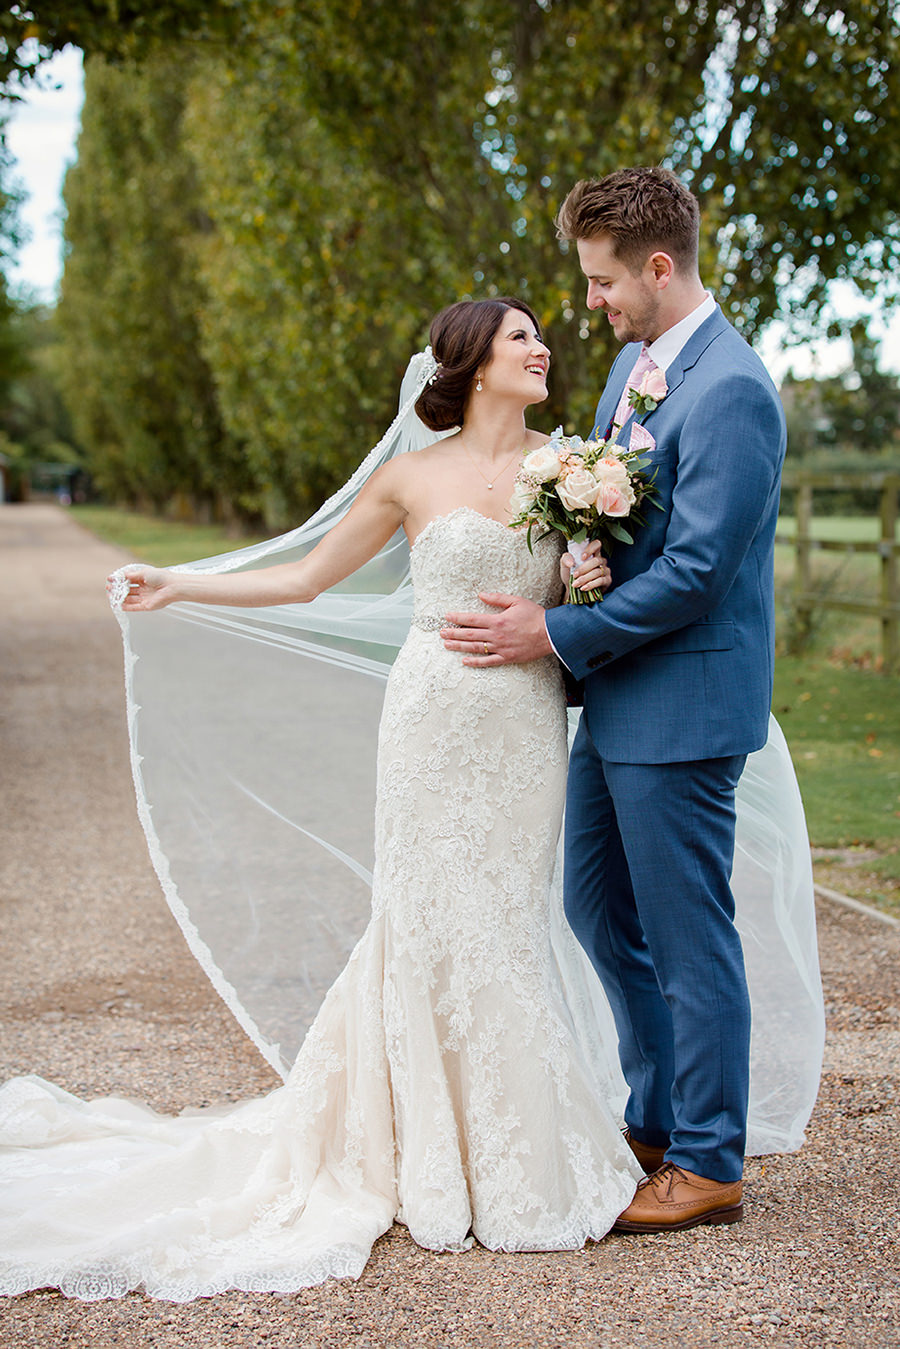 Vicky and Charlie's laid back Lillibrooke Manor wedding on the English Wedding Blog, photos by Sarah Ann Wright (27)